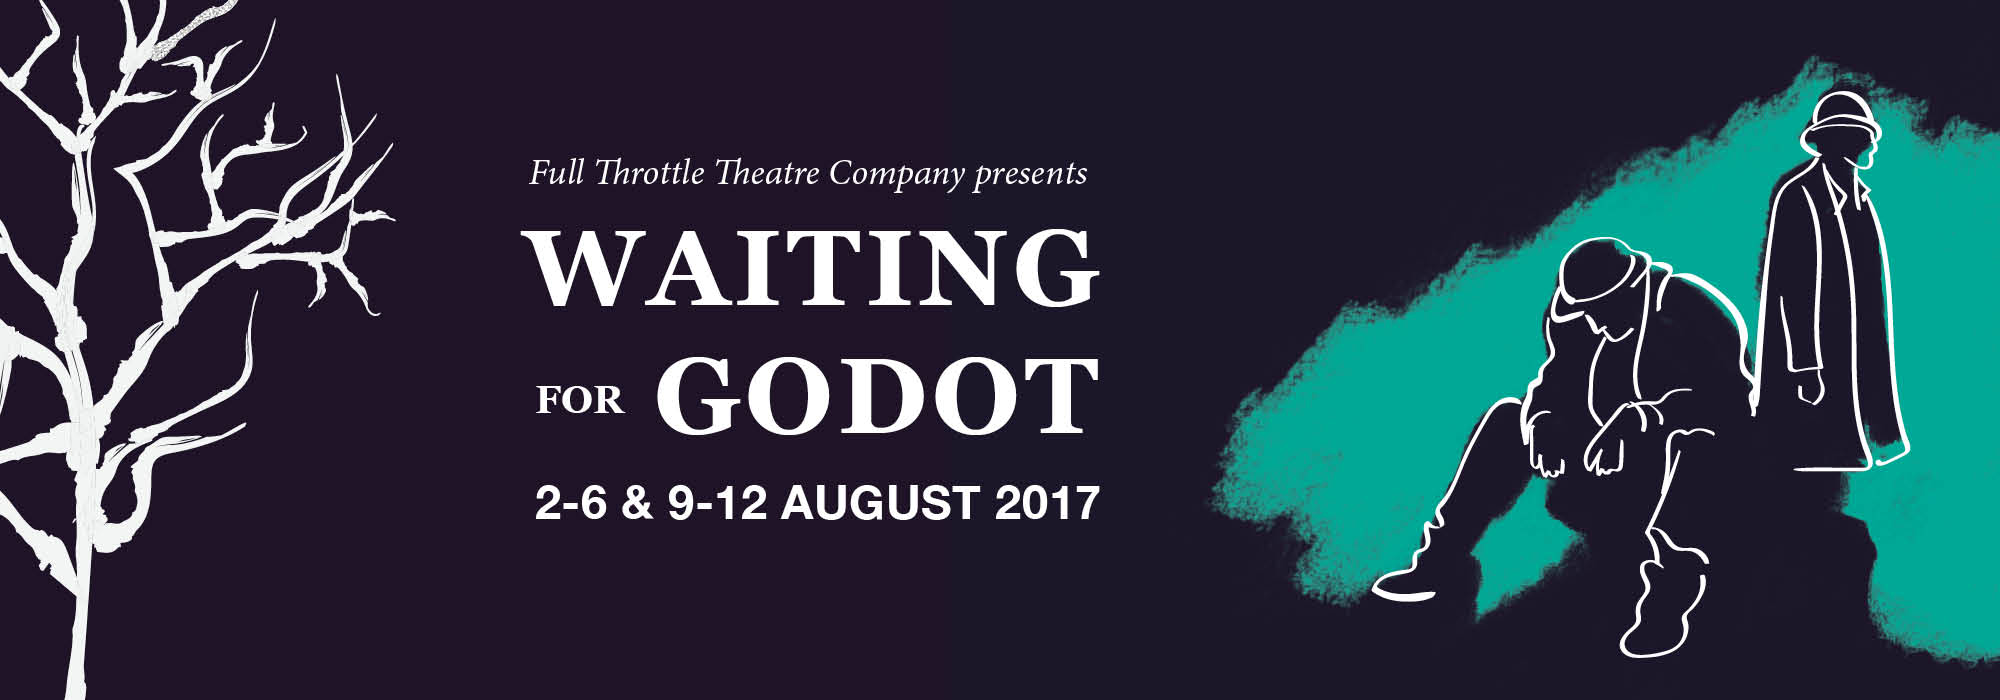 Waiting for Godot - Full Throttle Theatre Company